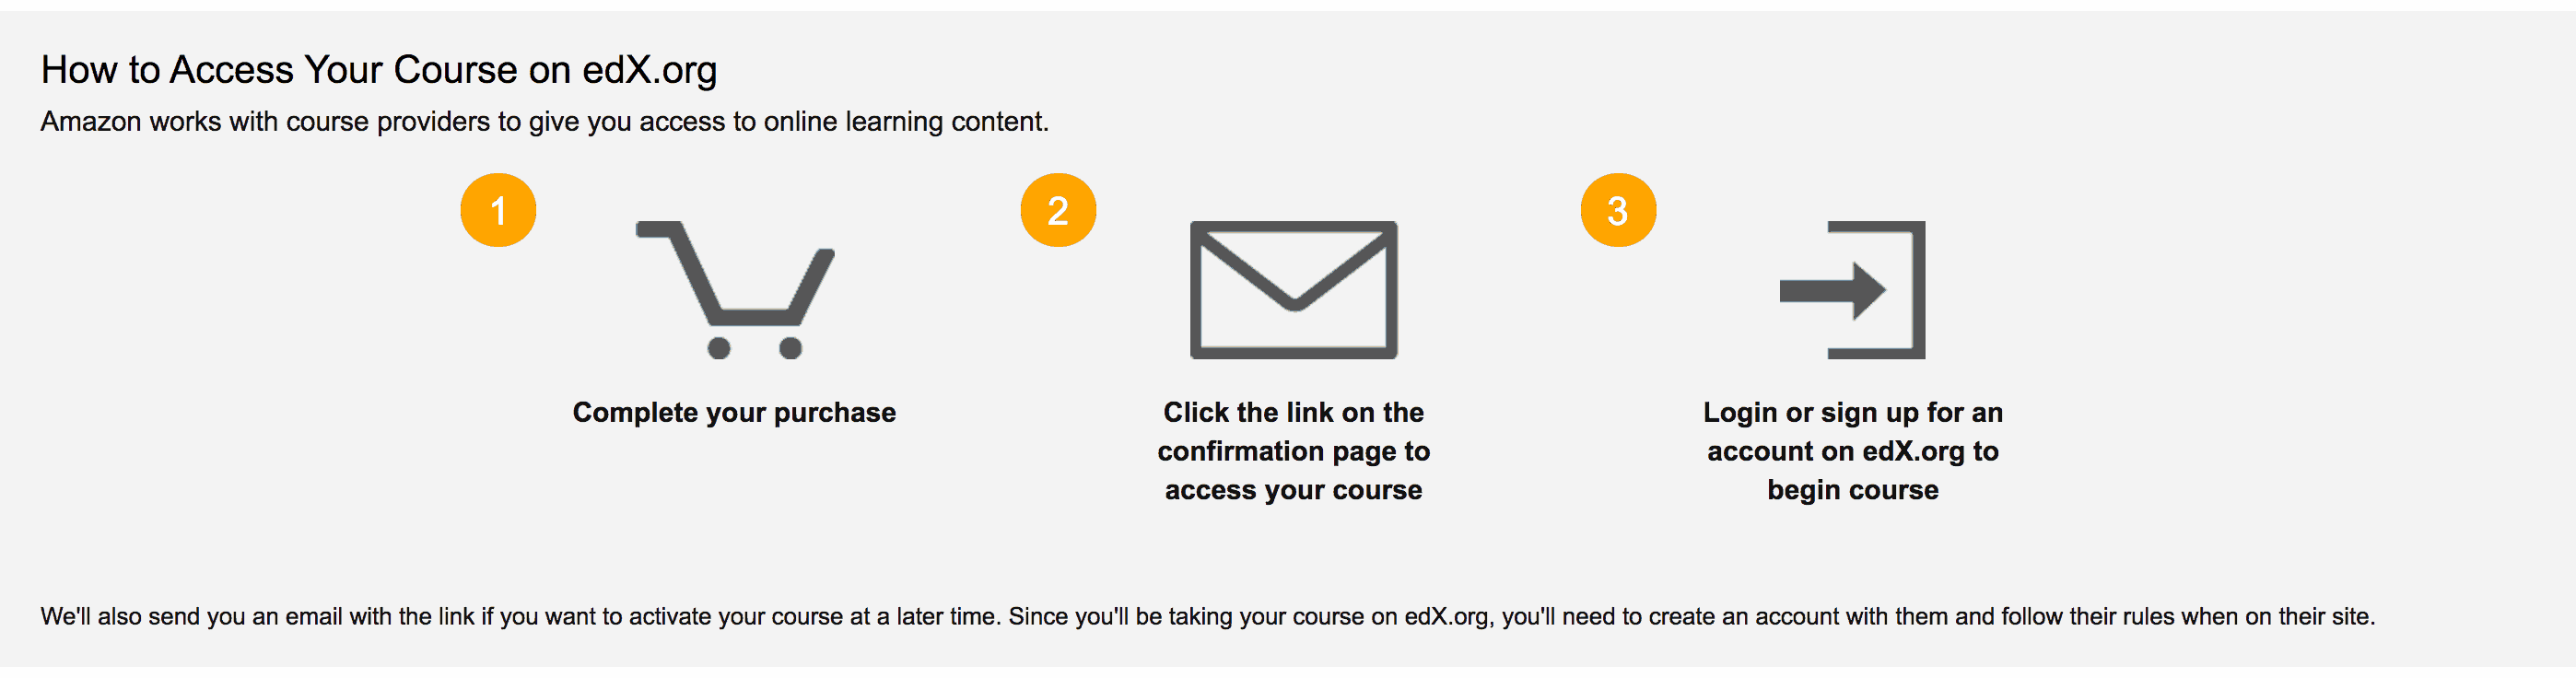 How to Access Your Courses on Amazon